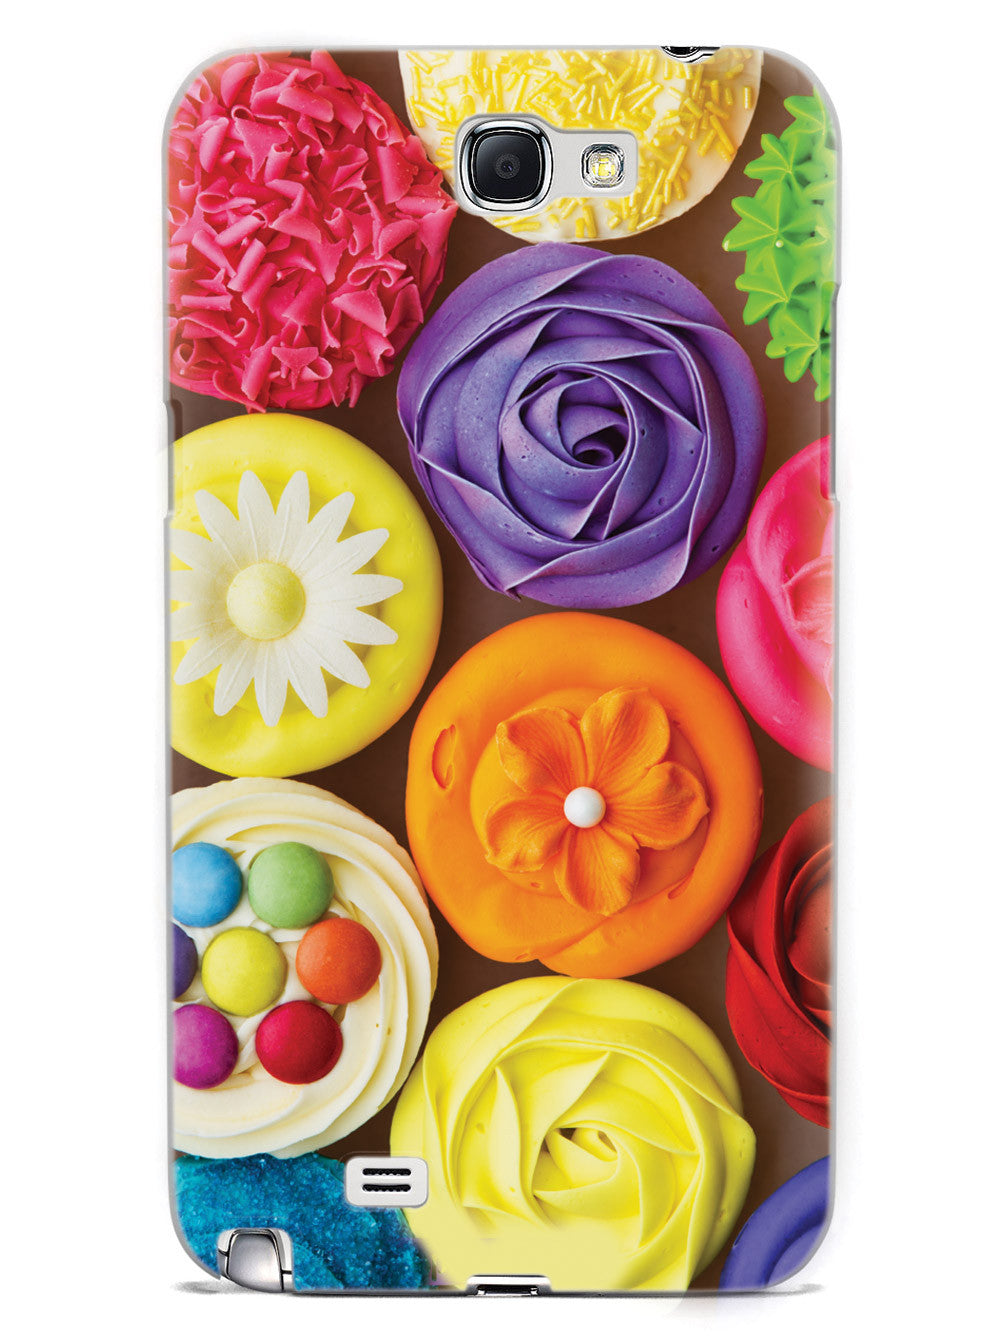 Cupcakes Galore! Sweet's Lover Case